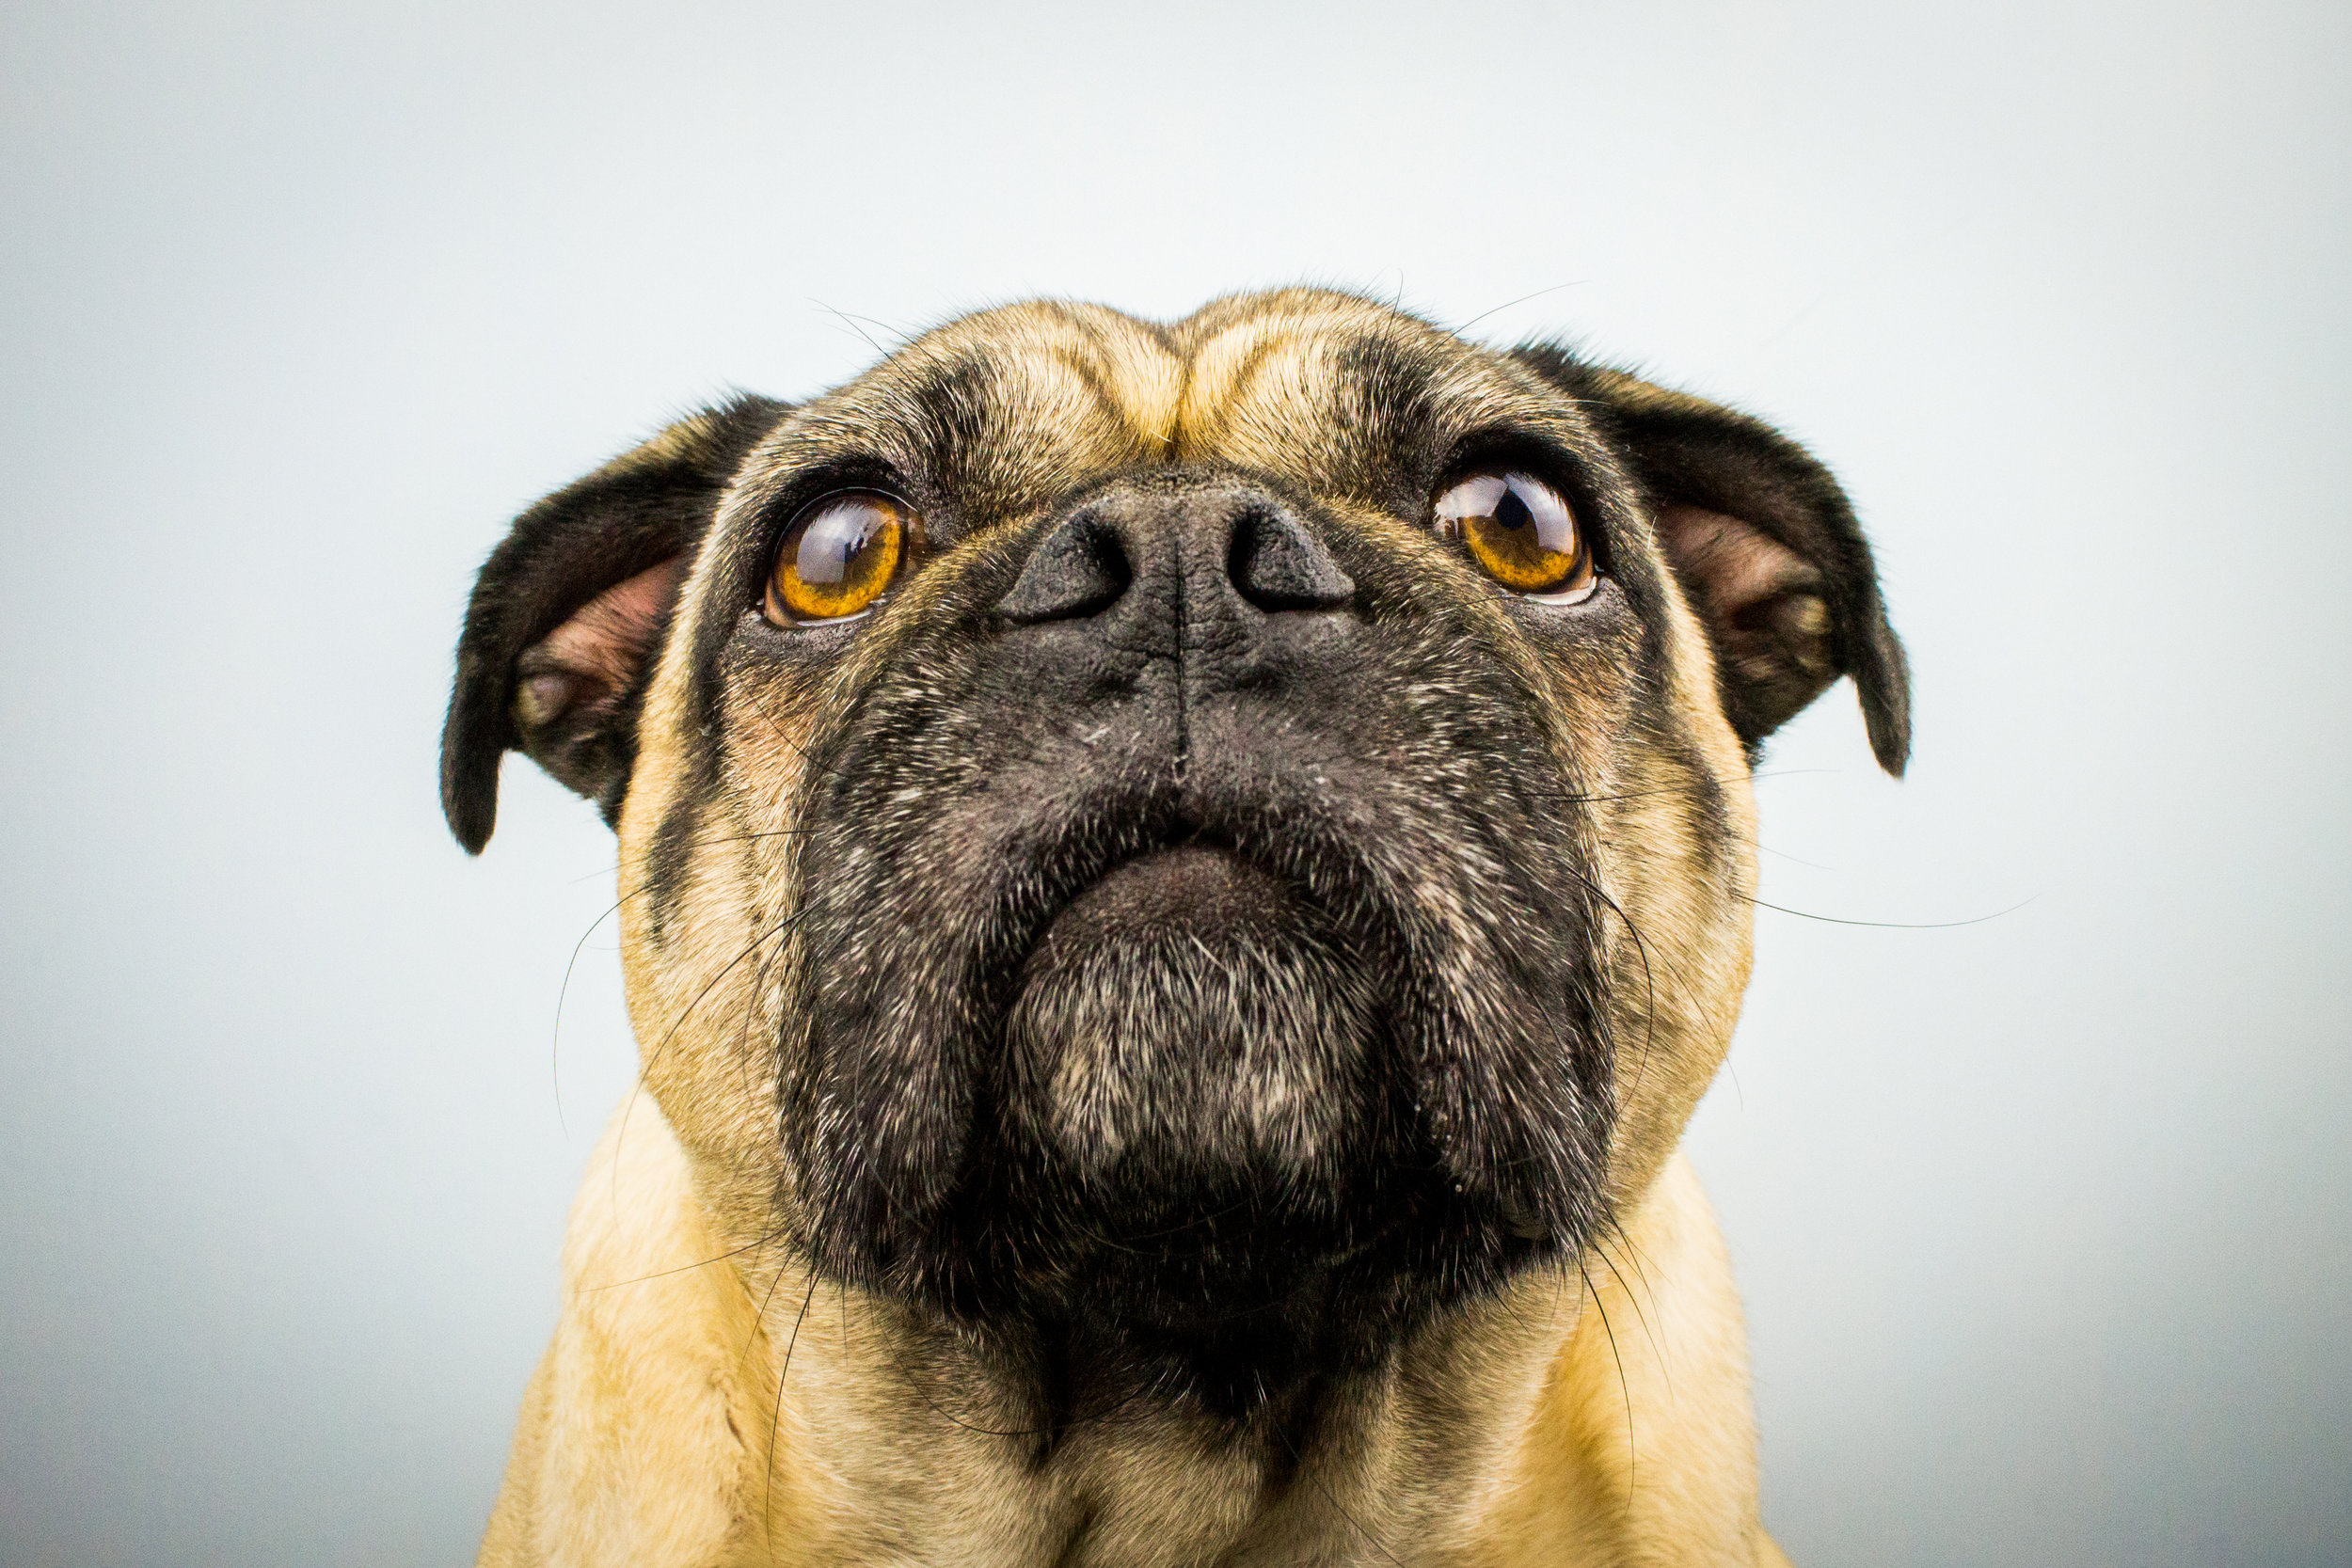 Photograph of a Pug by Dog Photographer - Brent D'Silva. Brampton, Ontario.